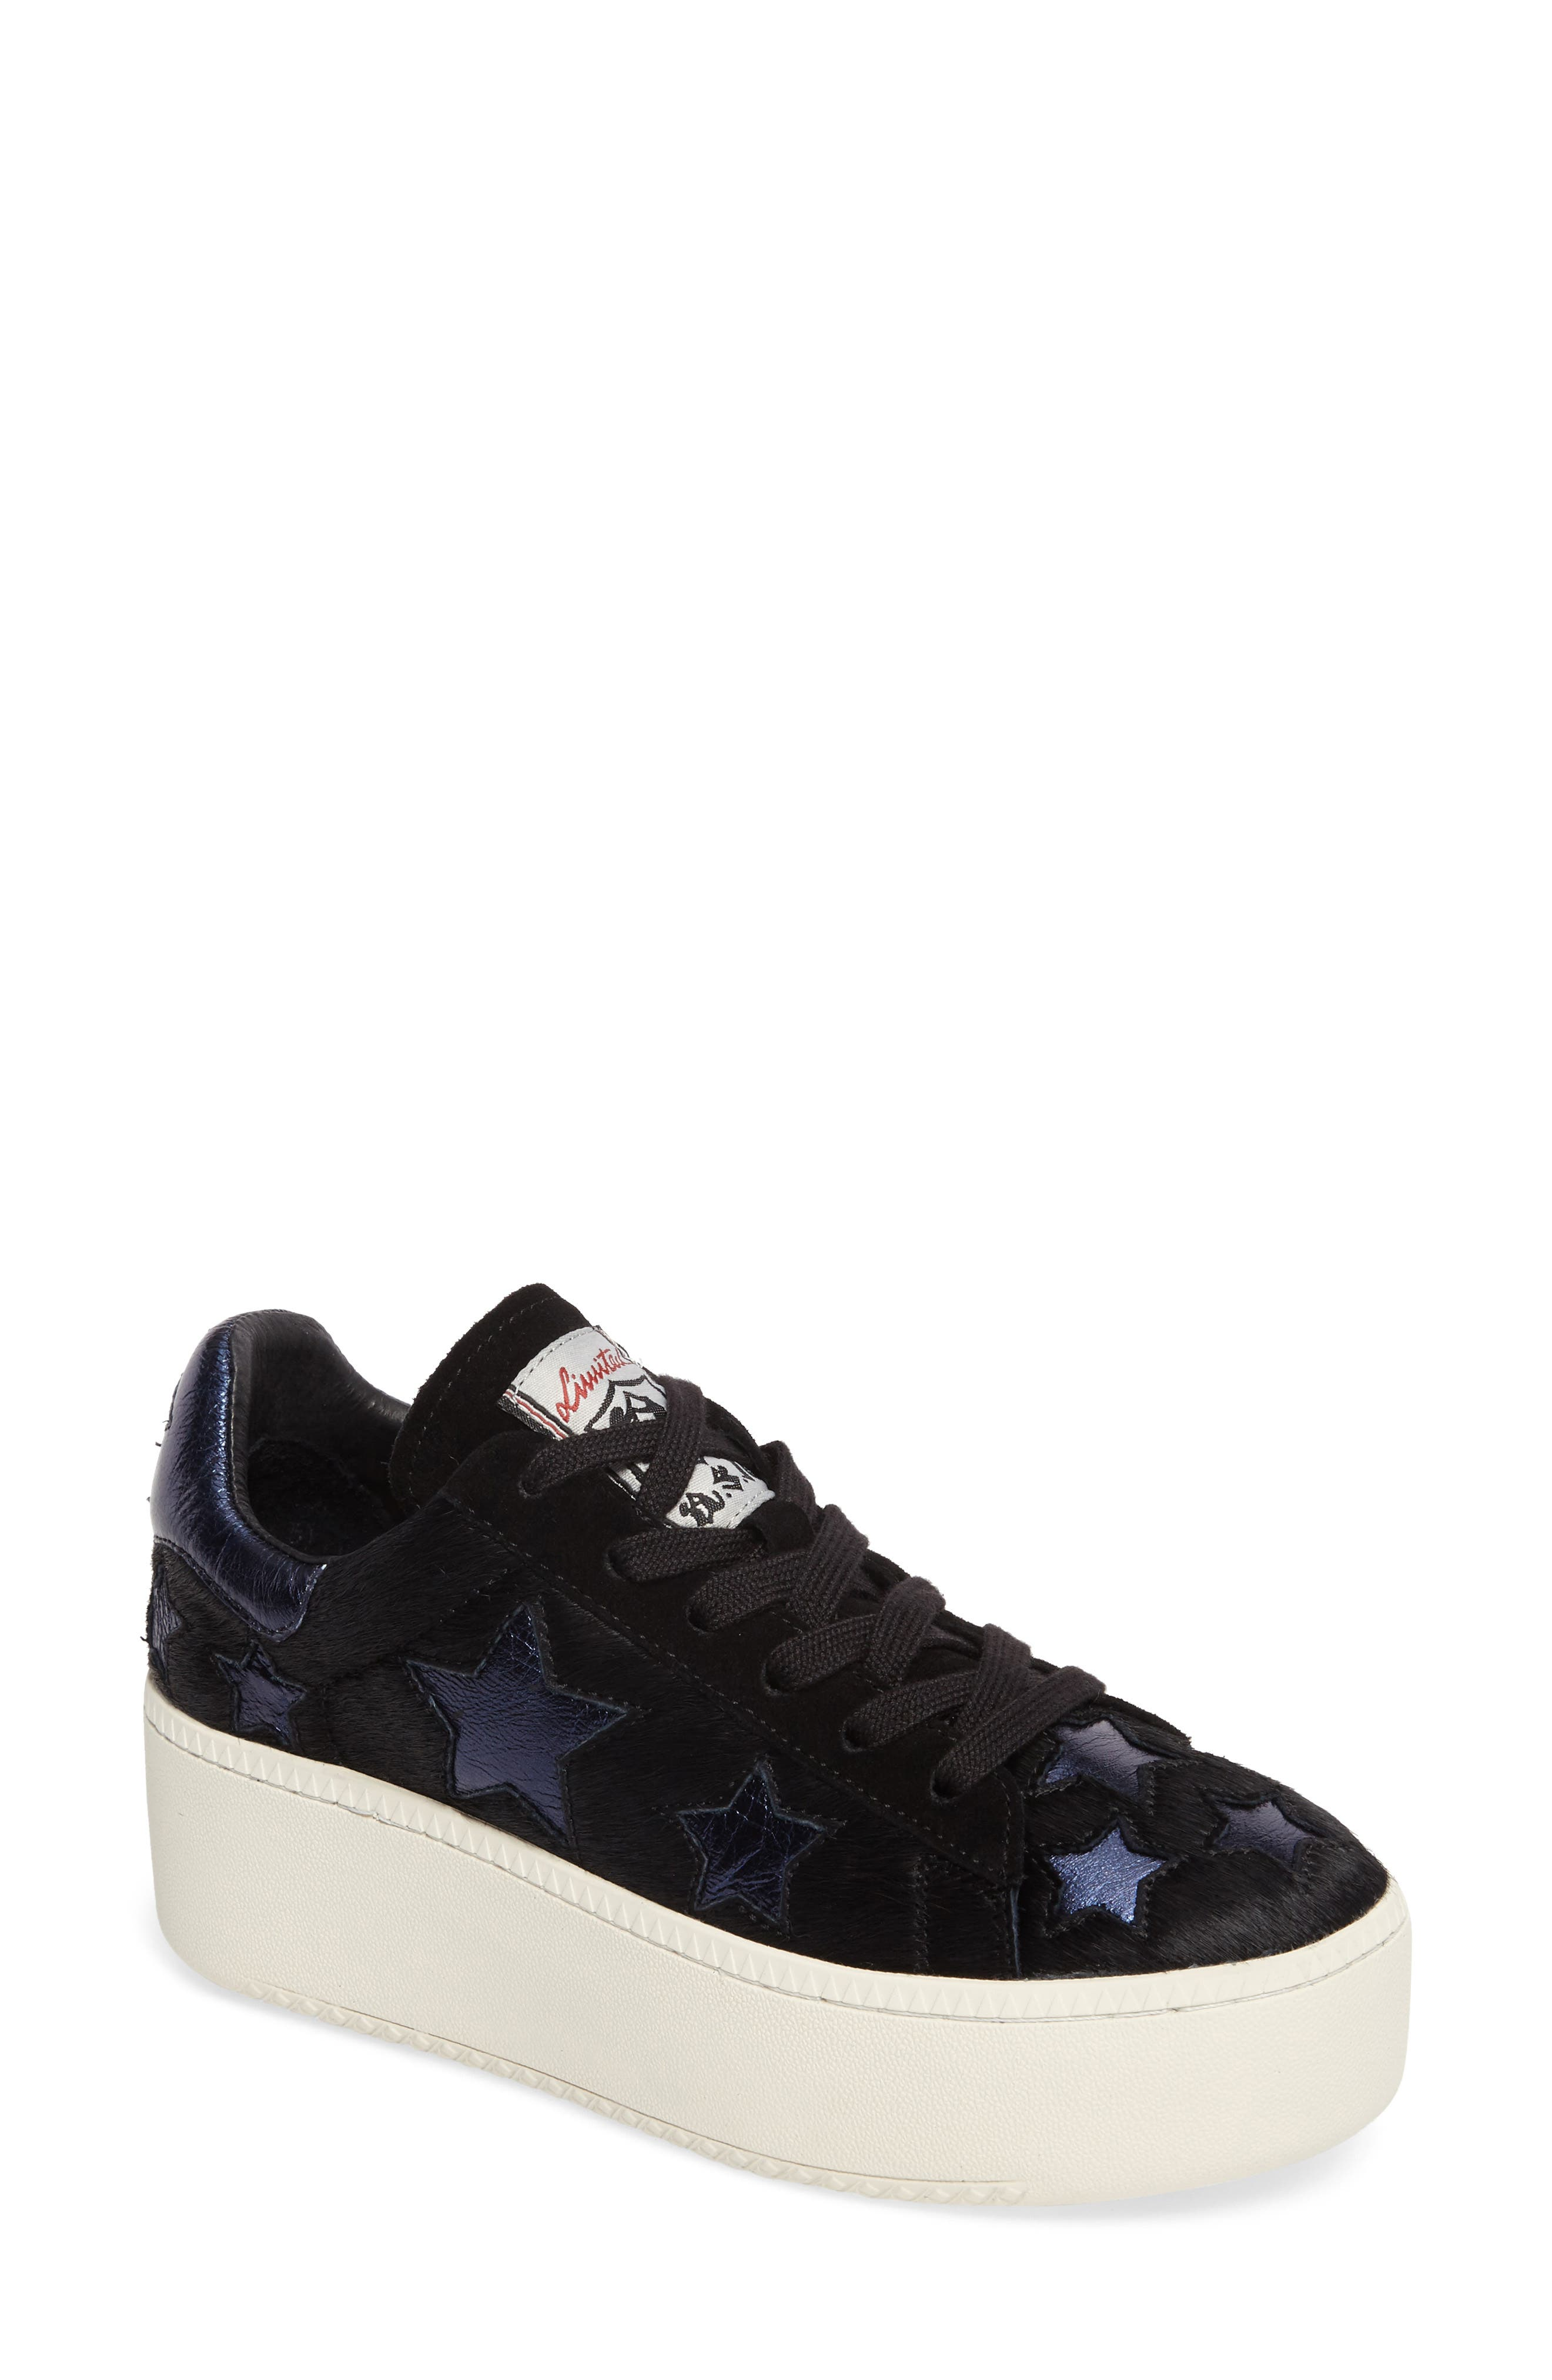 Cult Star Calf Hair Sneaker,                             Main thumbnail 1, color,                             001